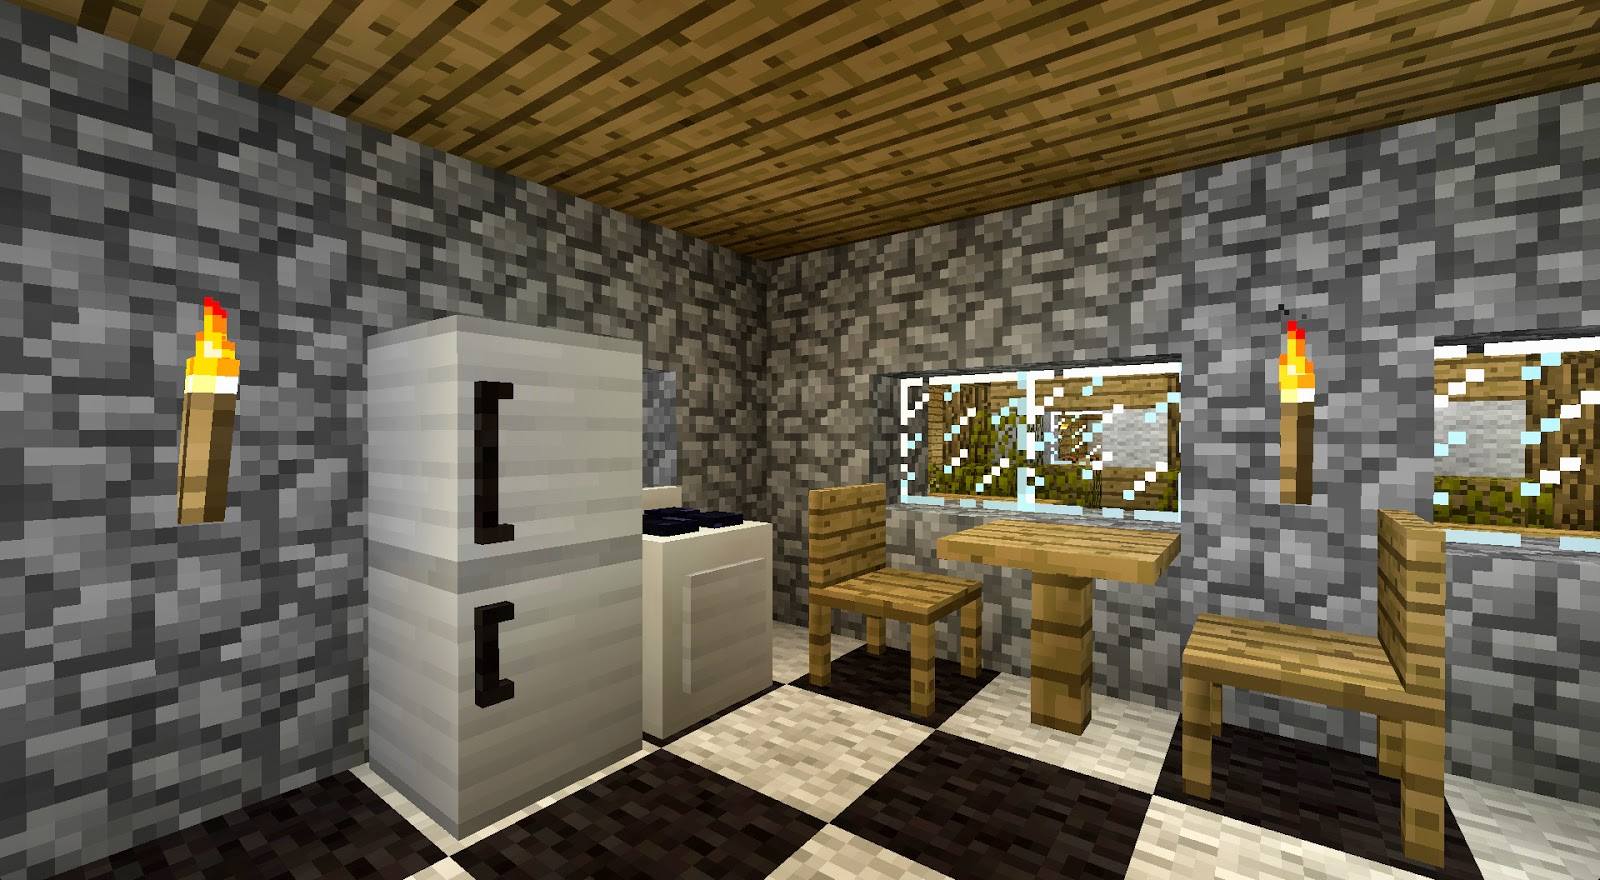 Furniture Mod By Mr Crayfish Top Minecraft Servers Blog